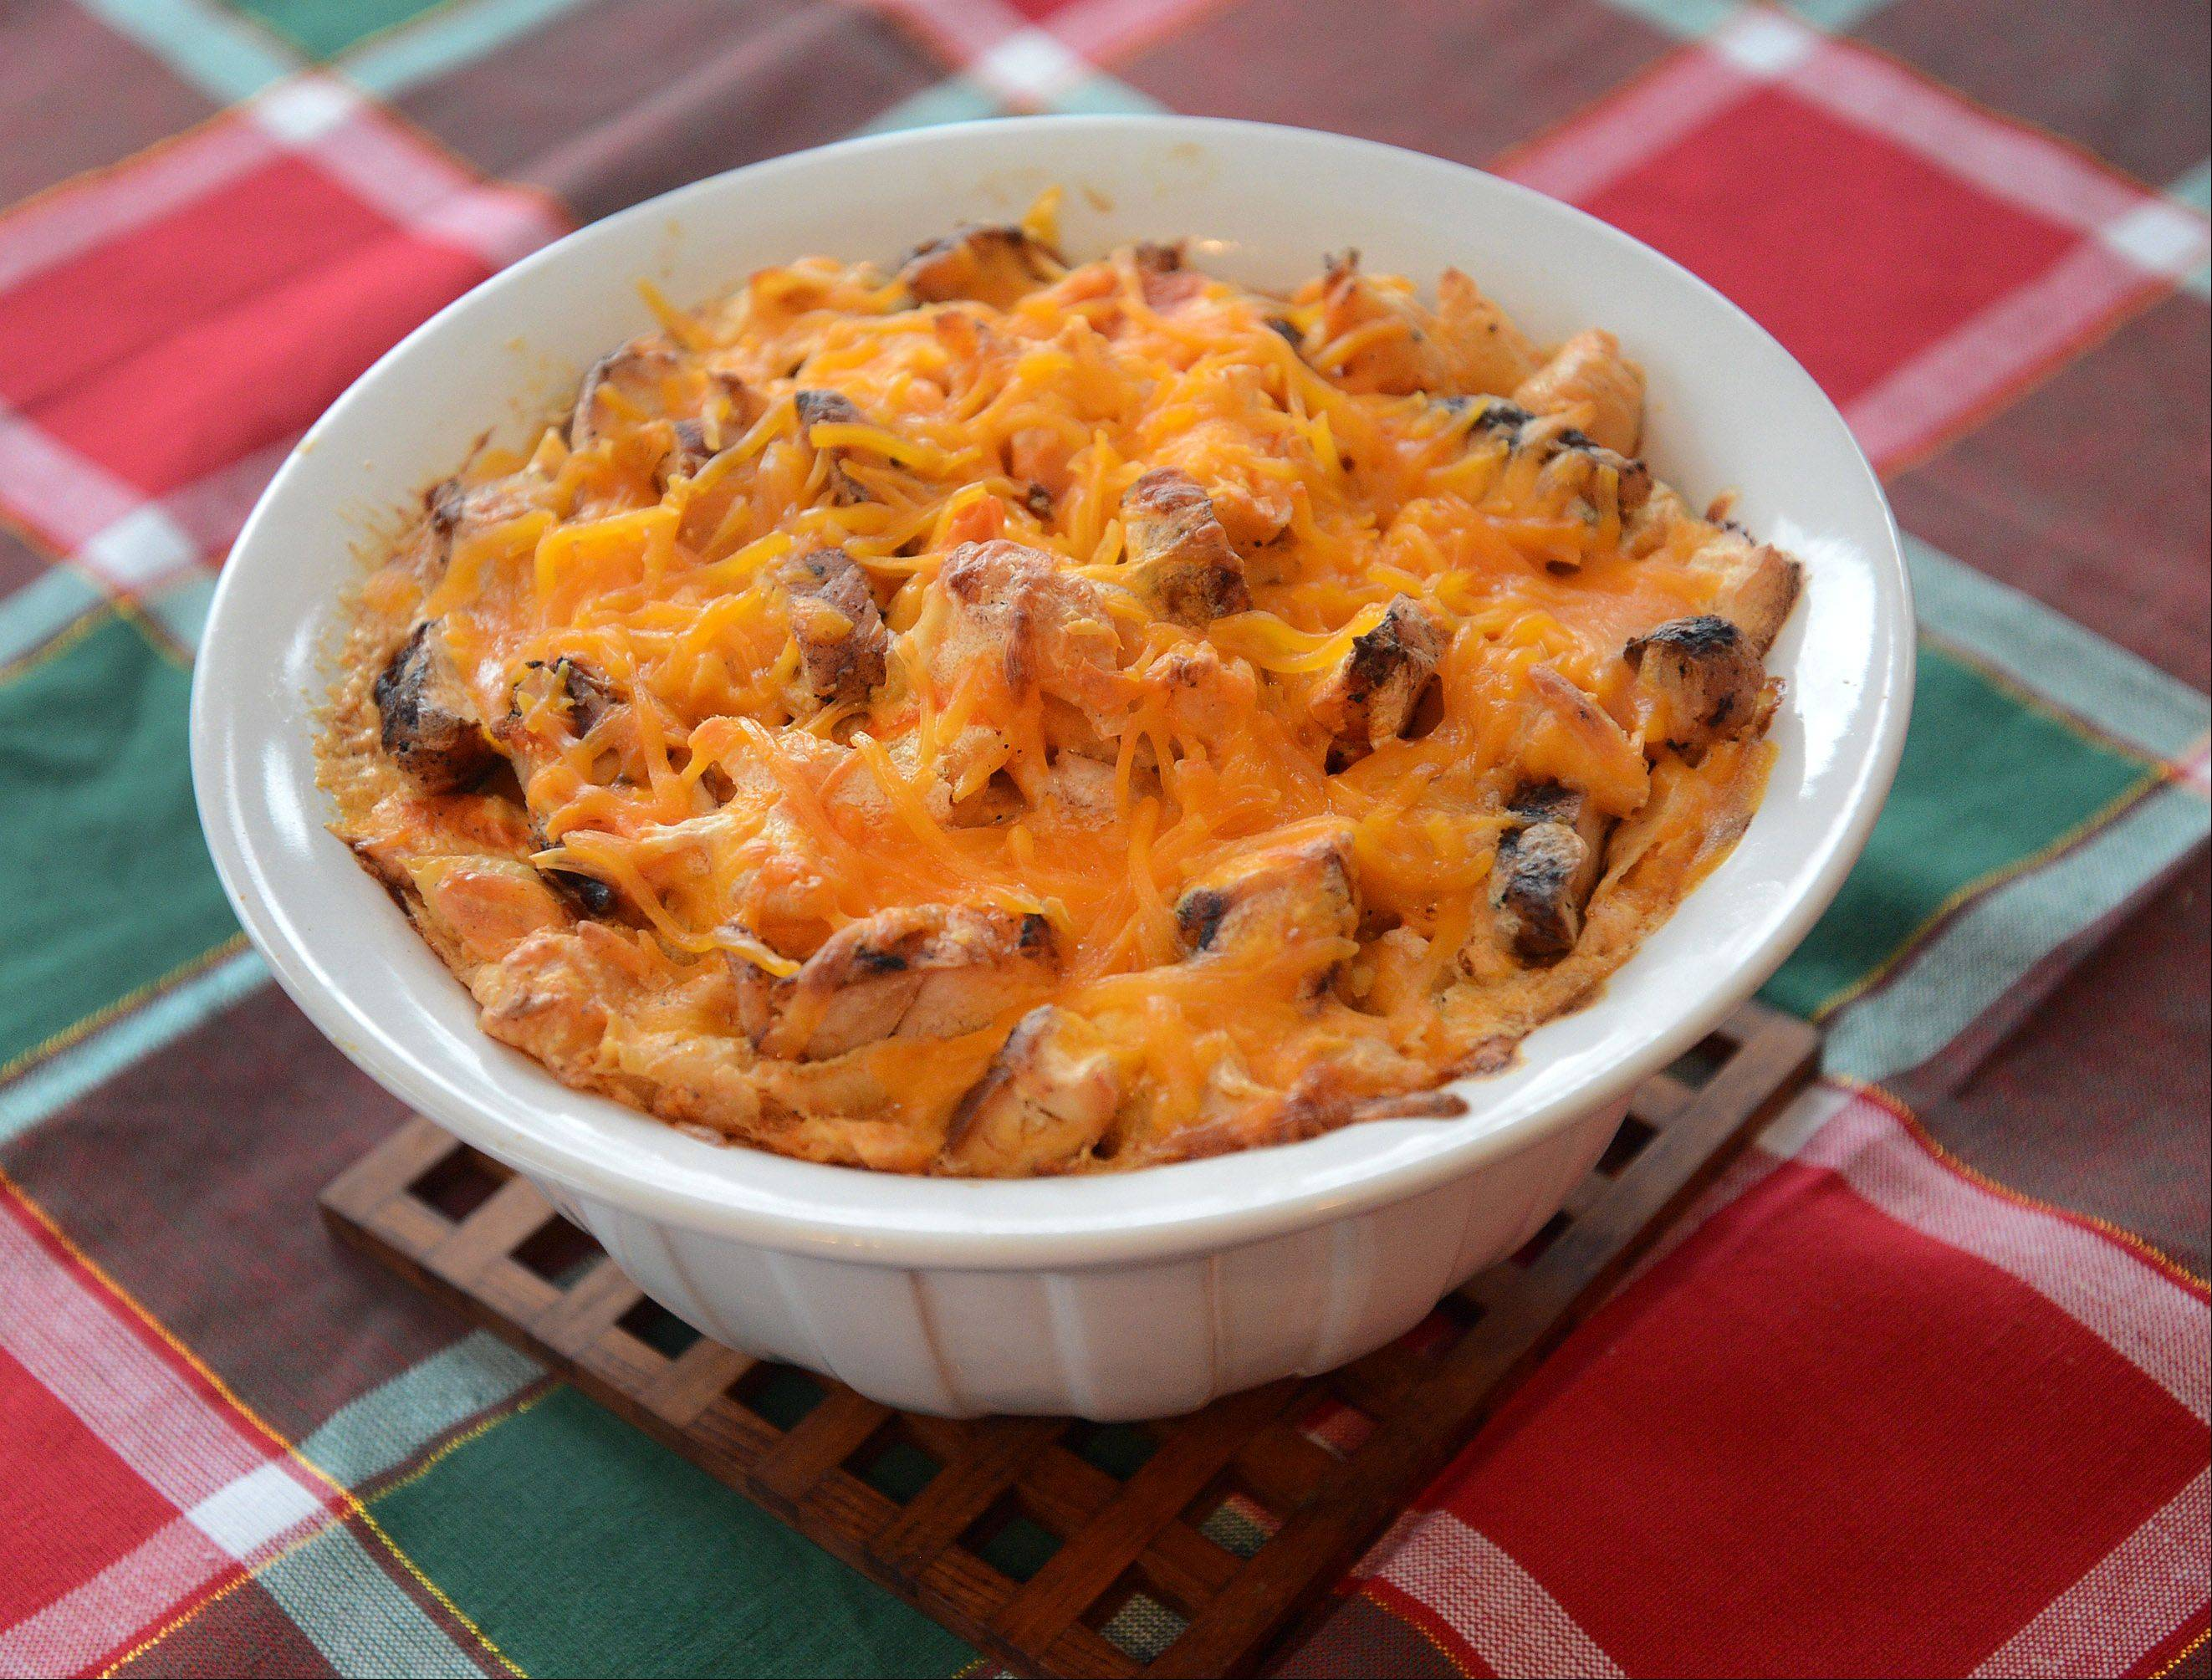 A half cup of hot sauce spices up Patty Nicpon�s Buffalo-style macaroni and cheese.